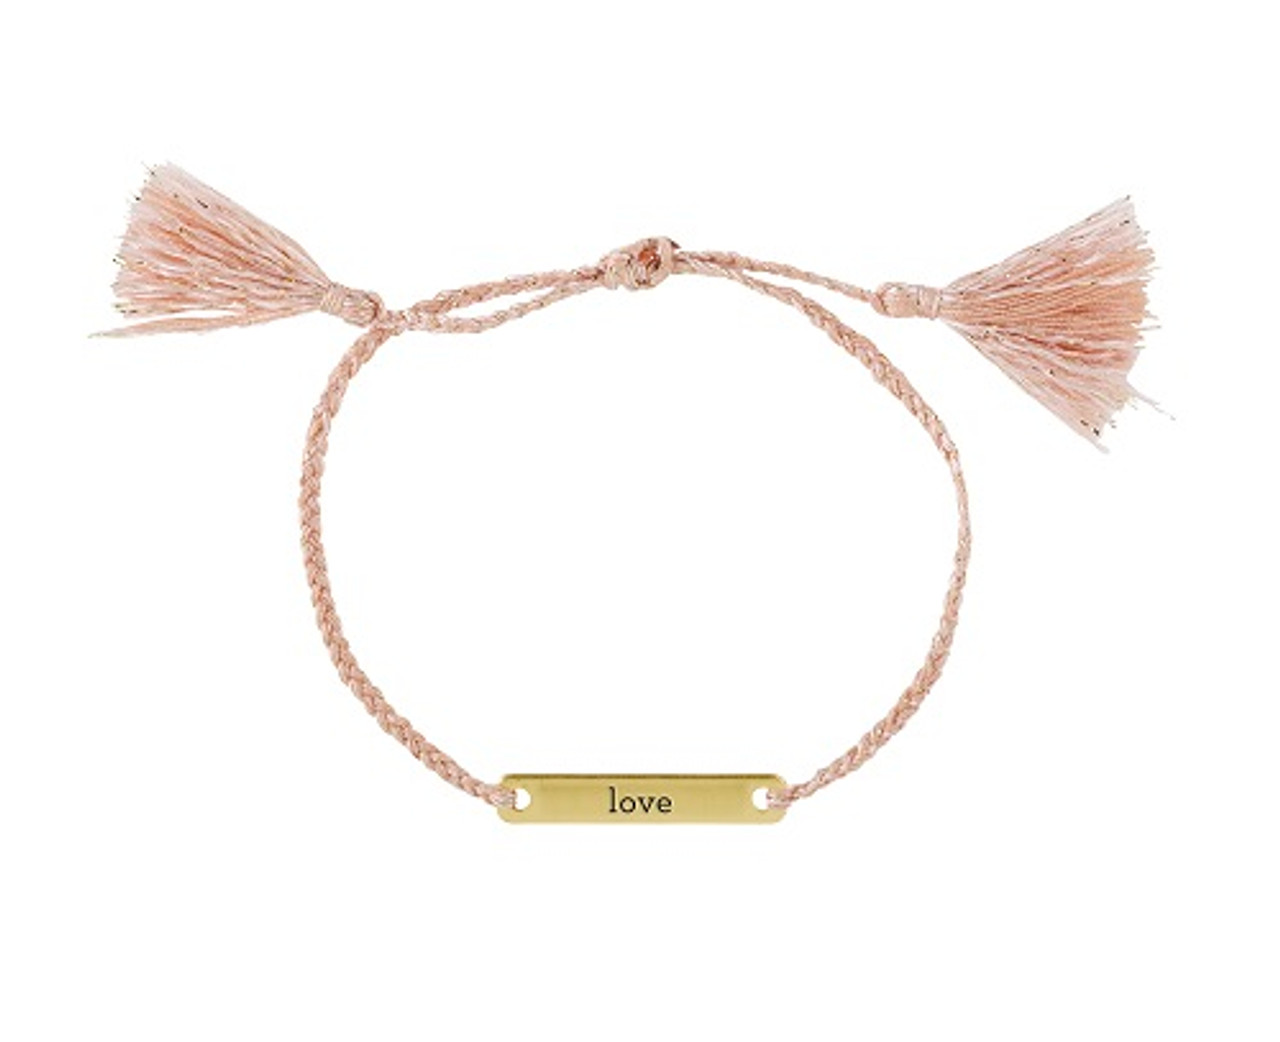 Joy In A Jar bracelets are delicately woven with a simple phrase stamped onto a brass bar, packaged inside a glass jar.